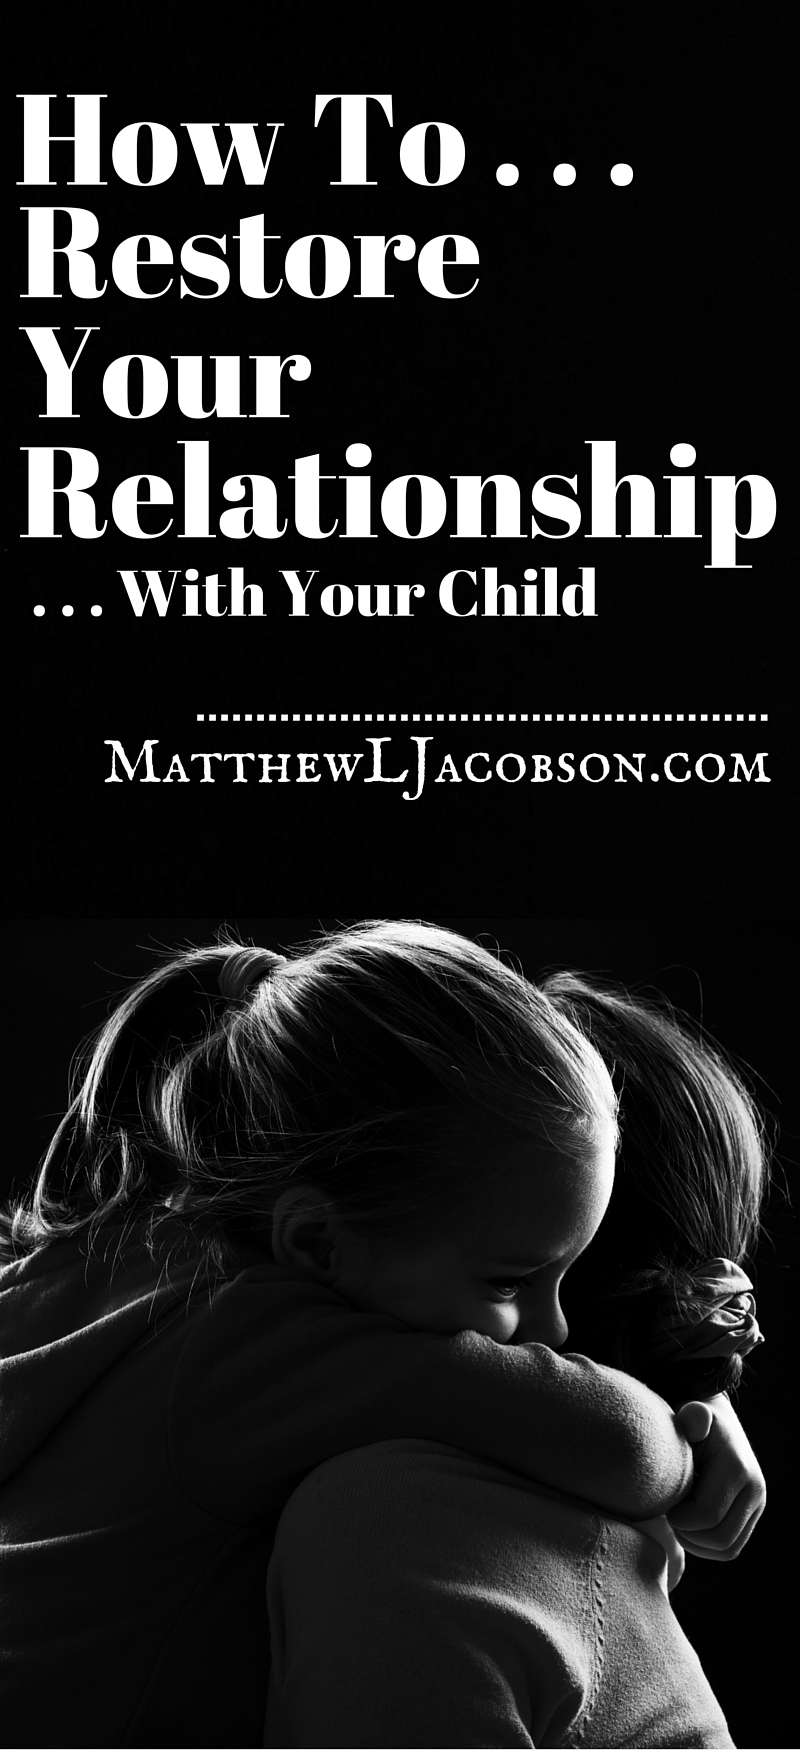 How To Restore Relationship With Your Child